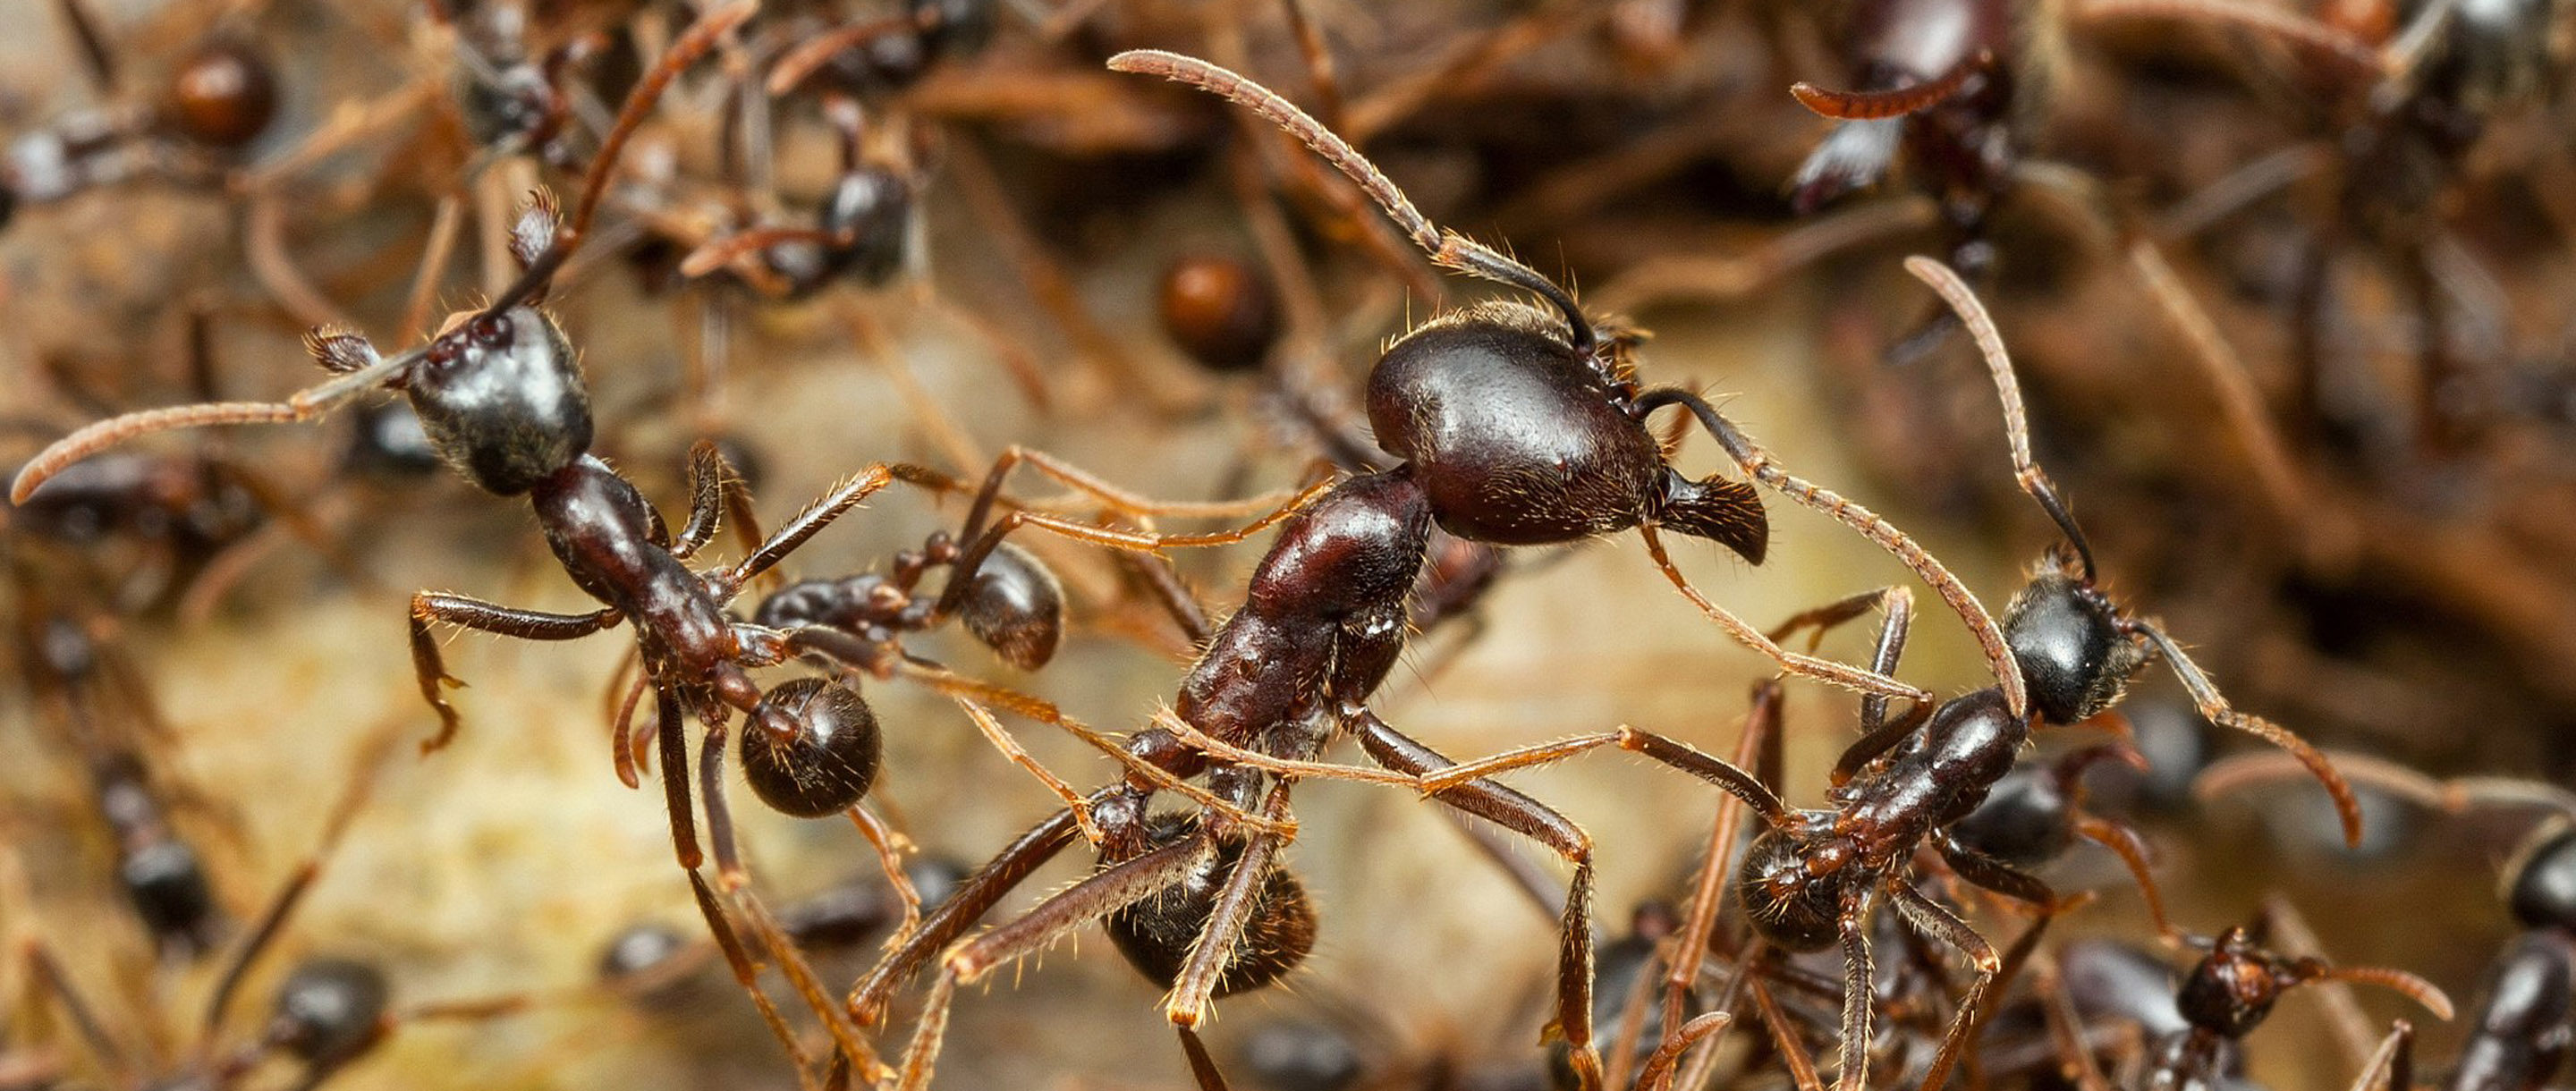 Homepage photo of army ants close up